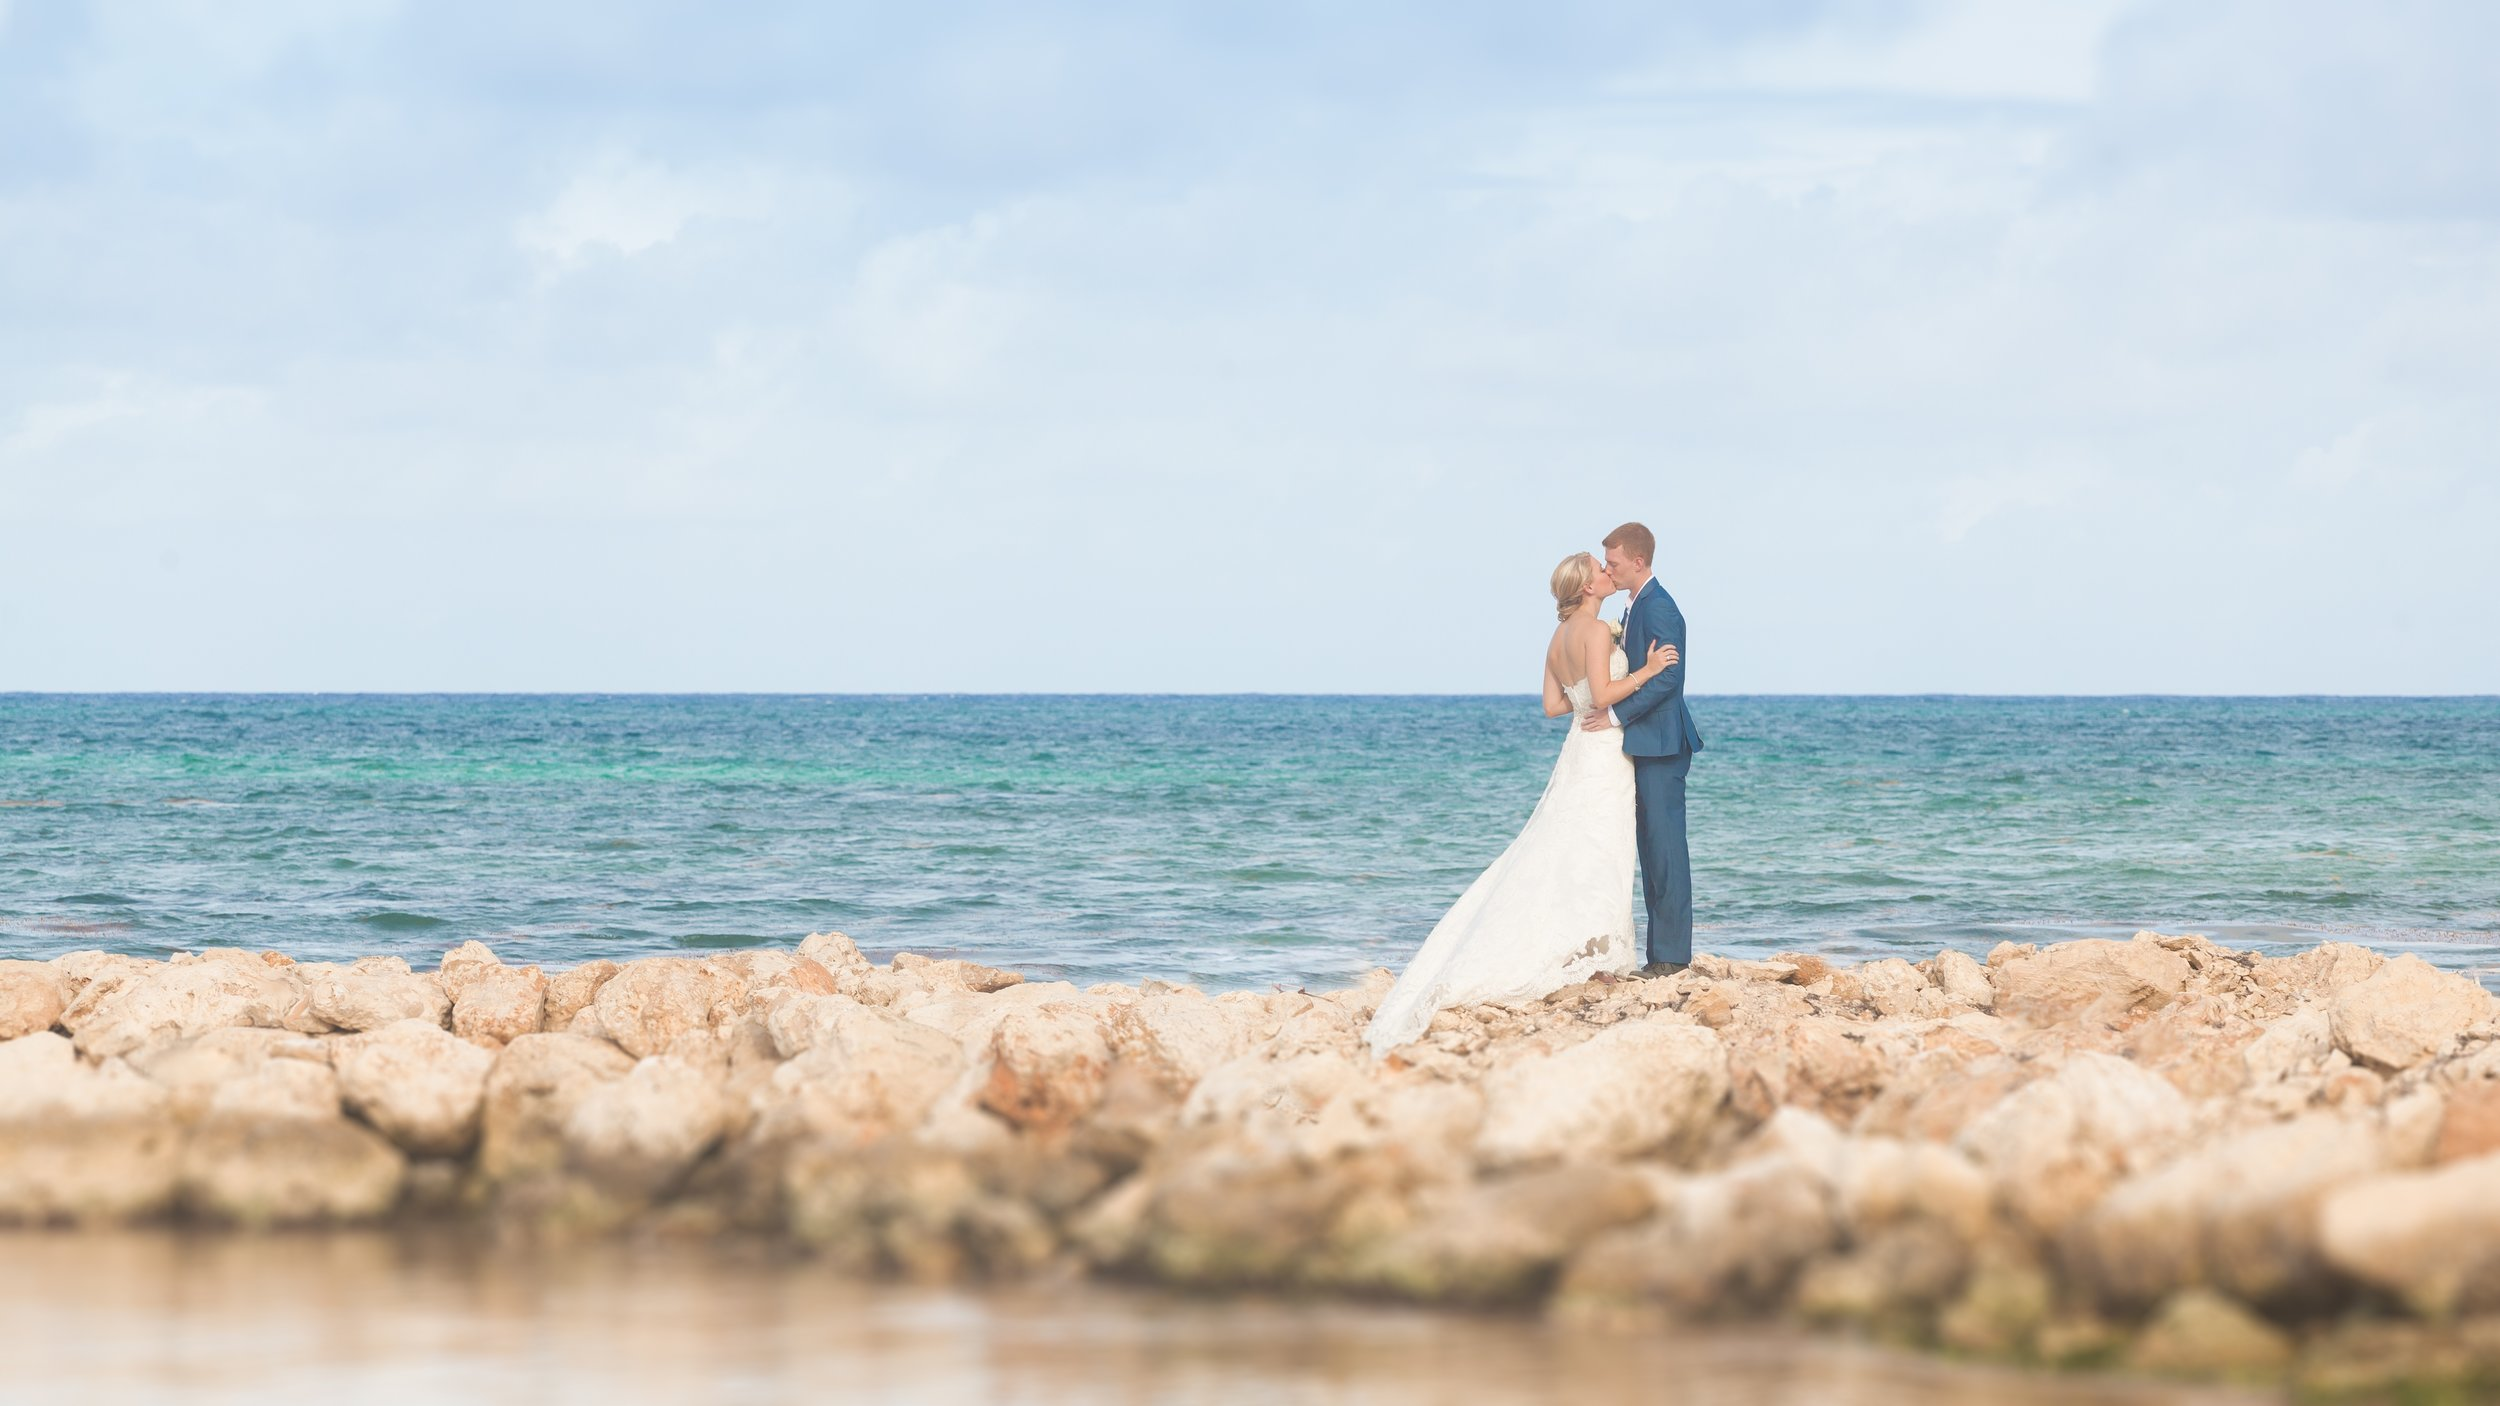 Our destination wedding in the Dominican Republic.